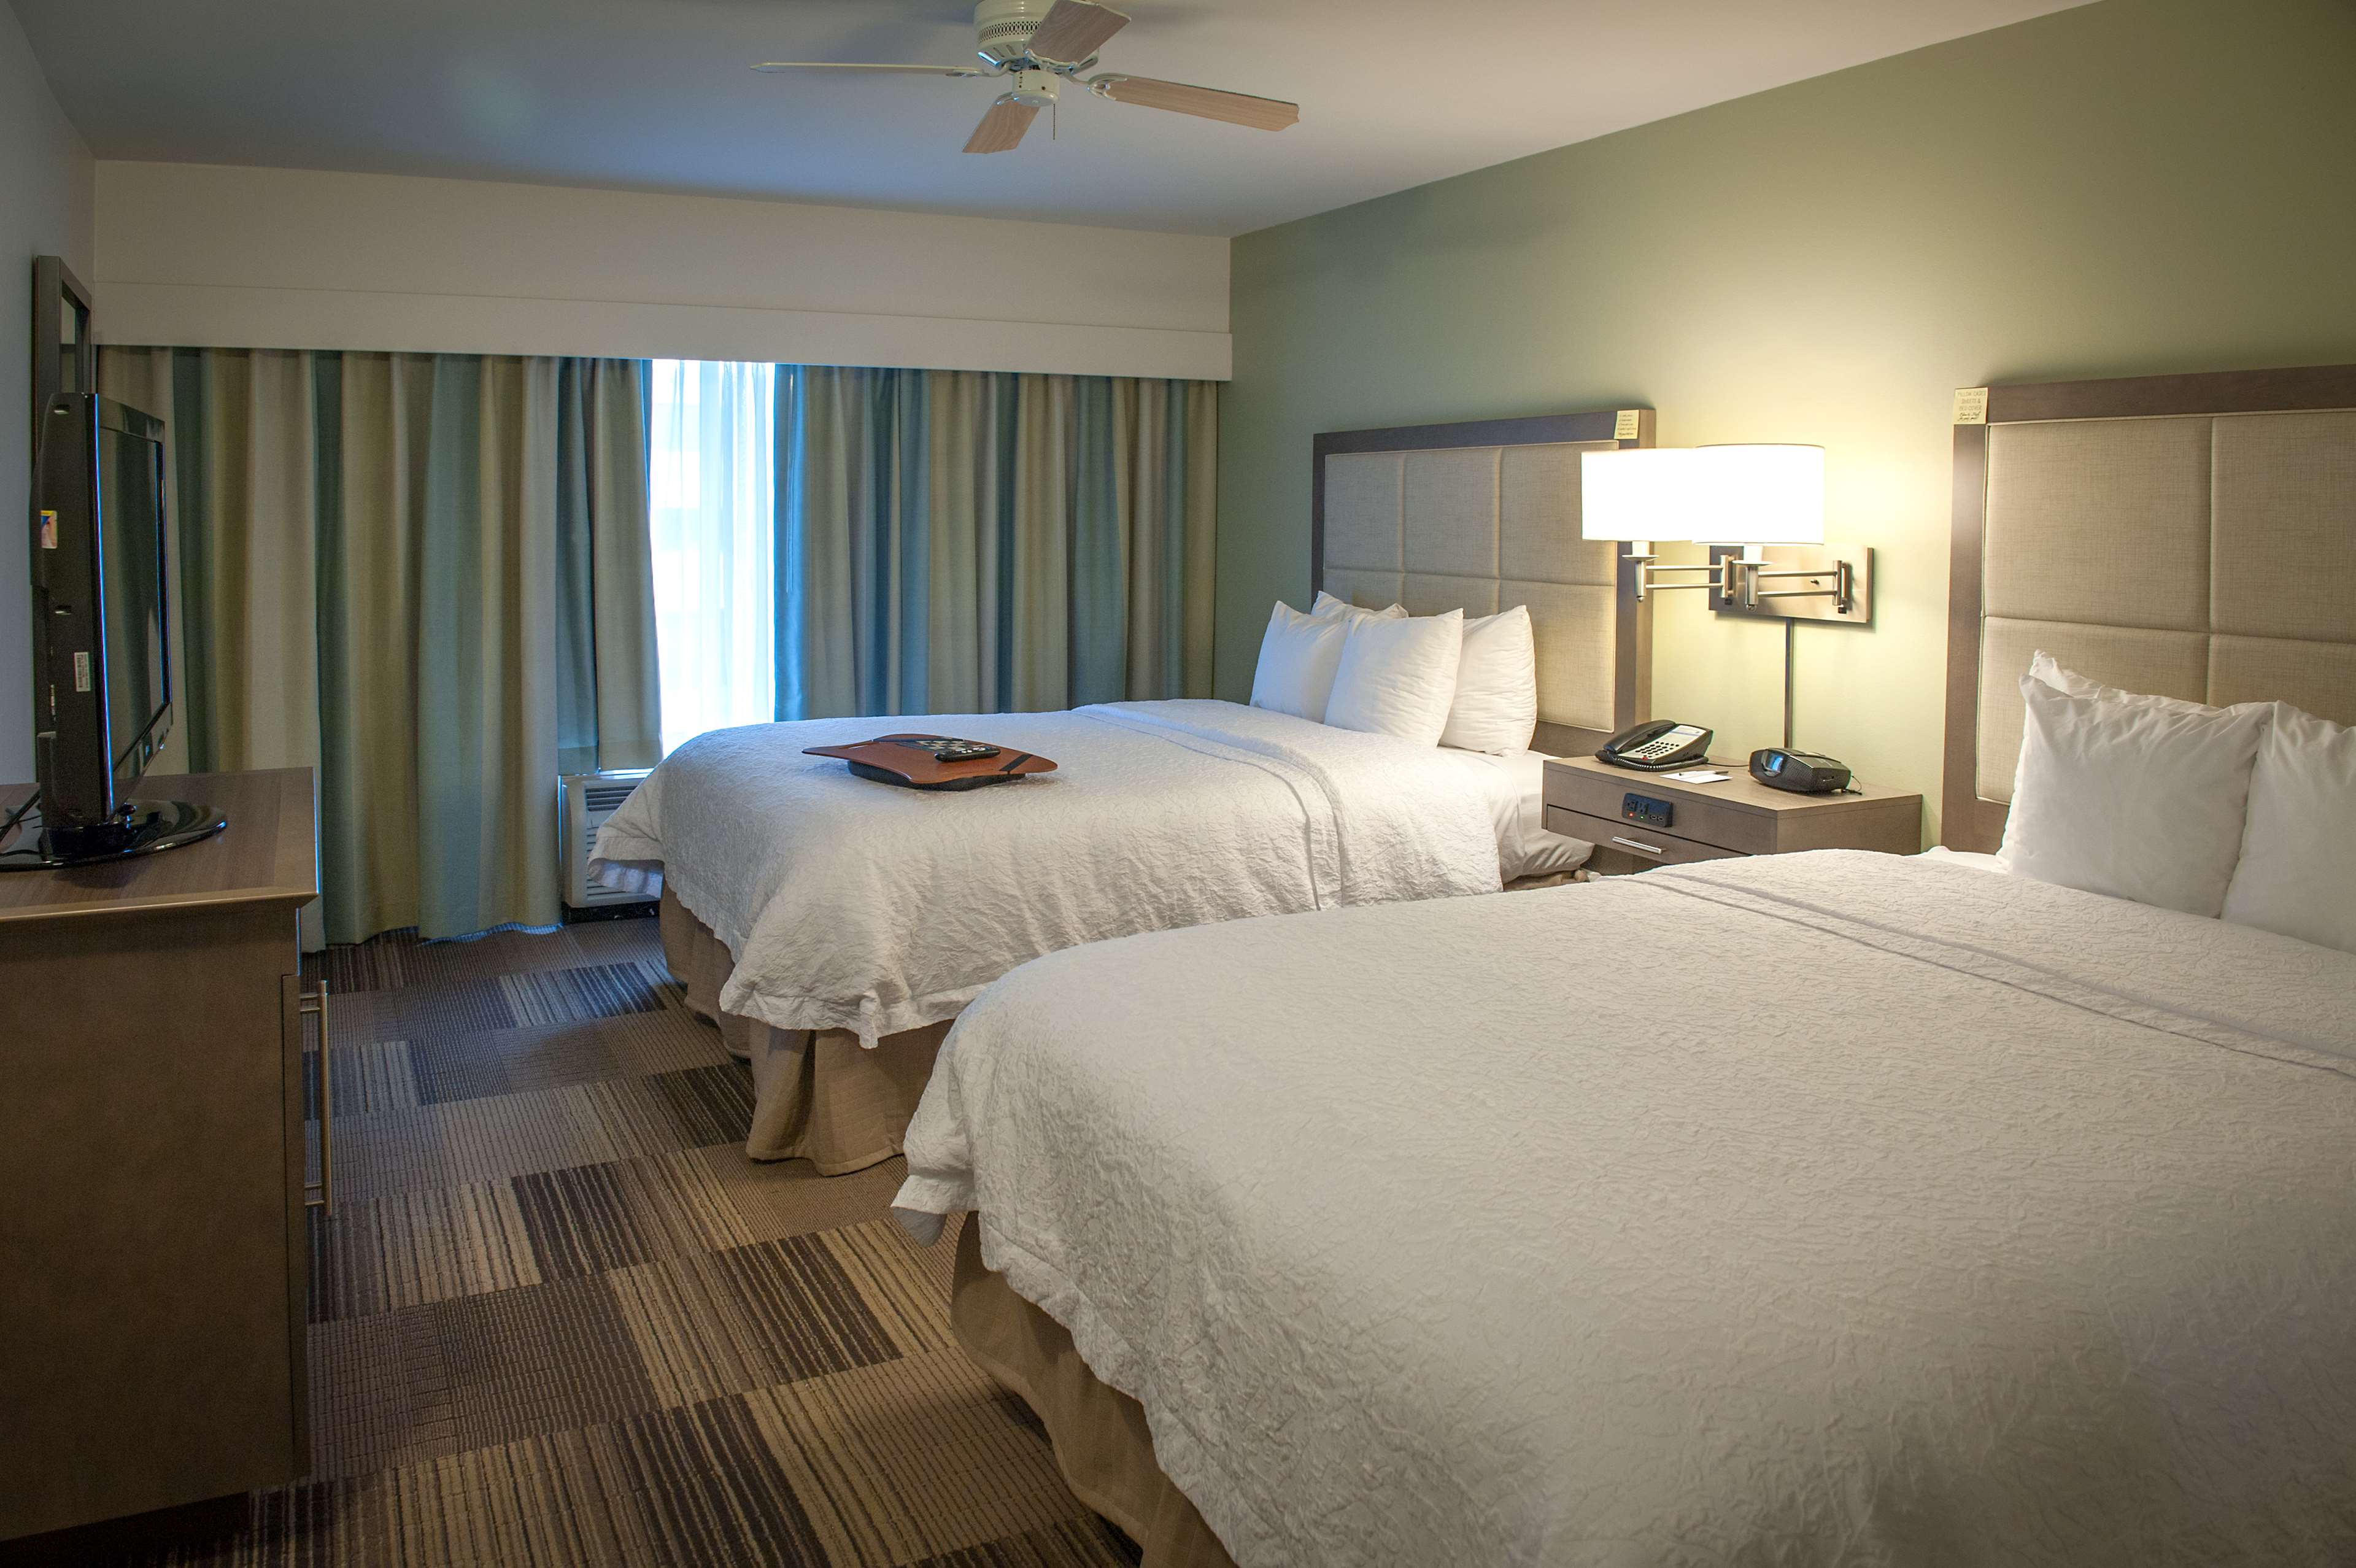 Hampton Inn & Suites New Orleans-Elmwood/Clearview Parkway Area image 25